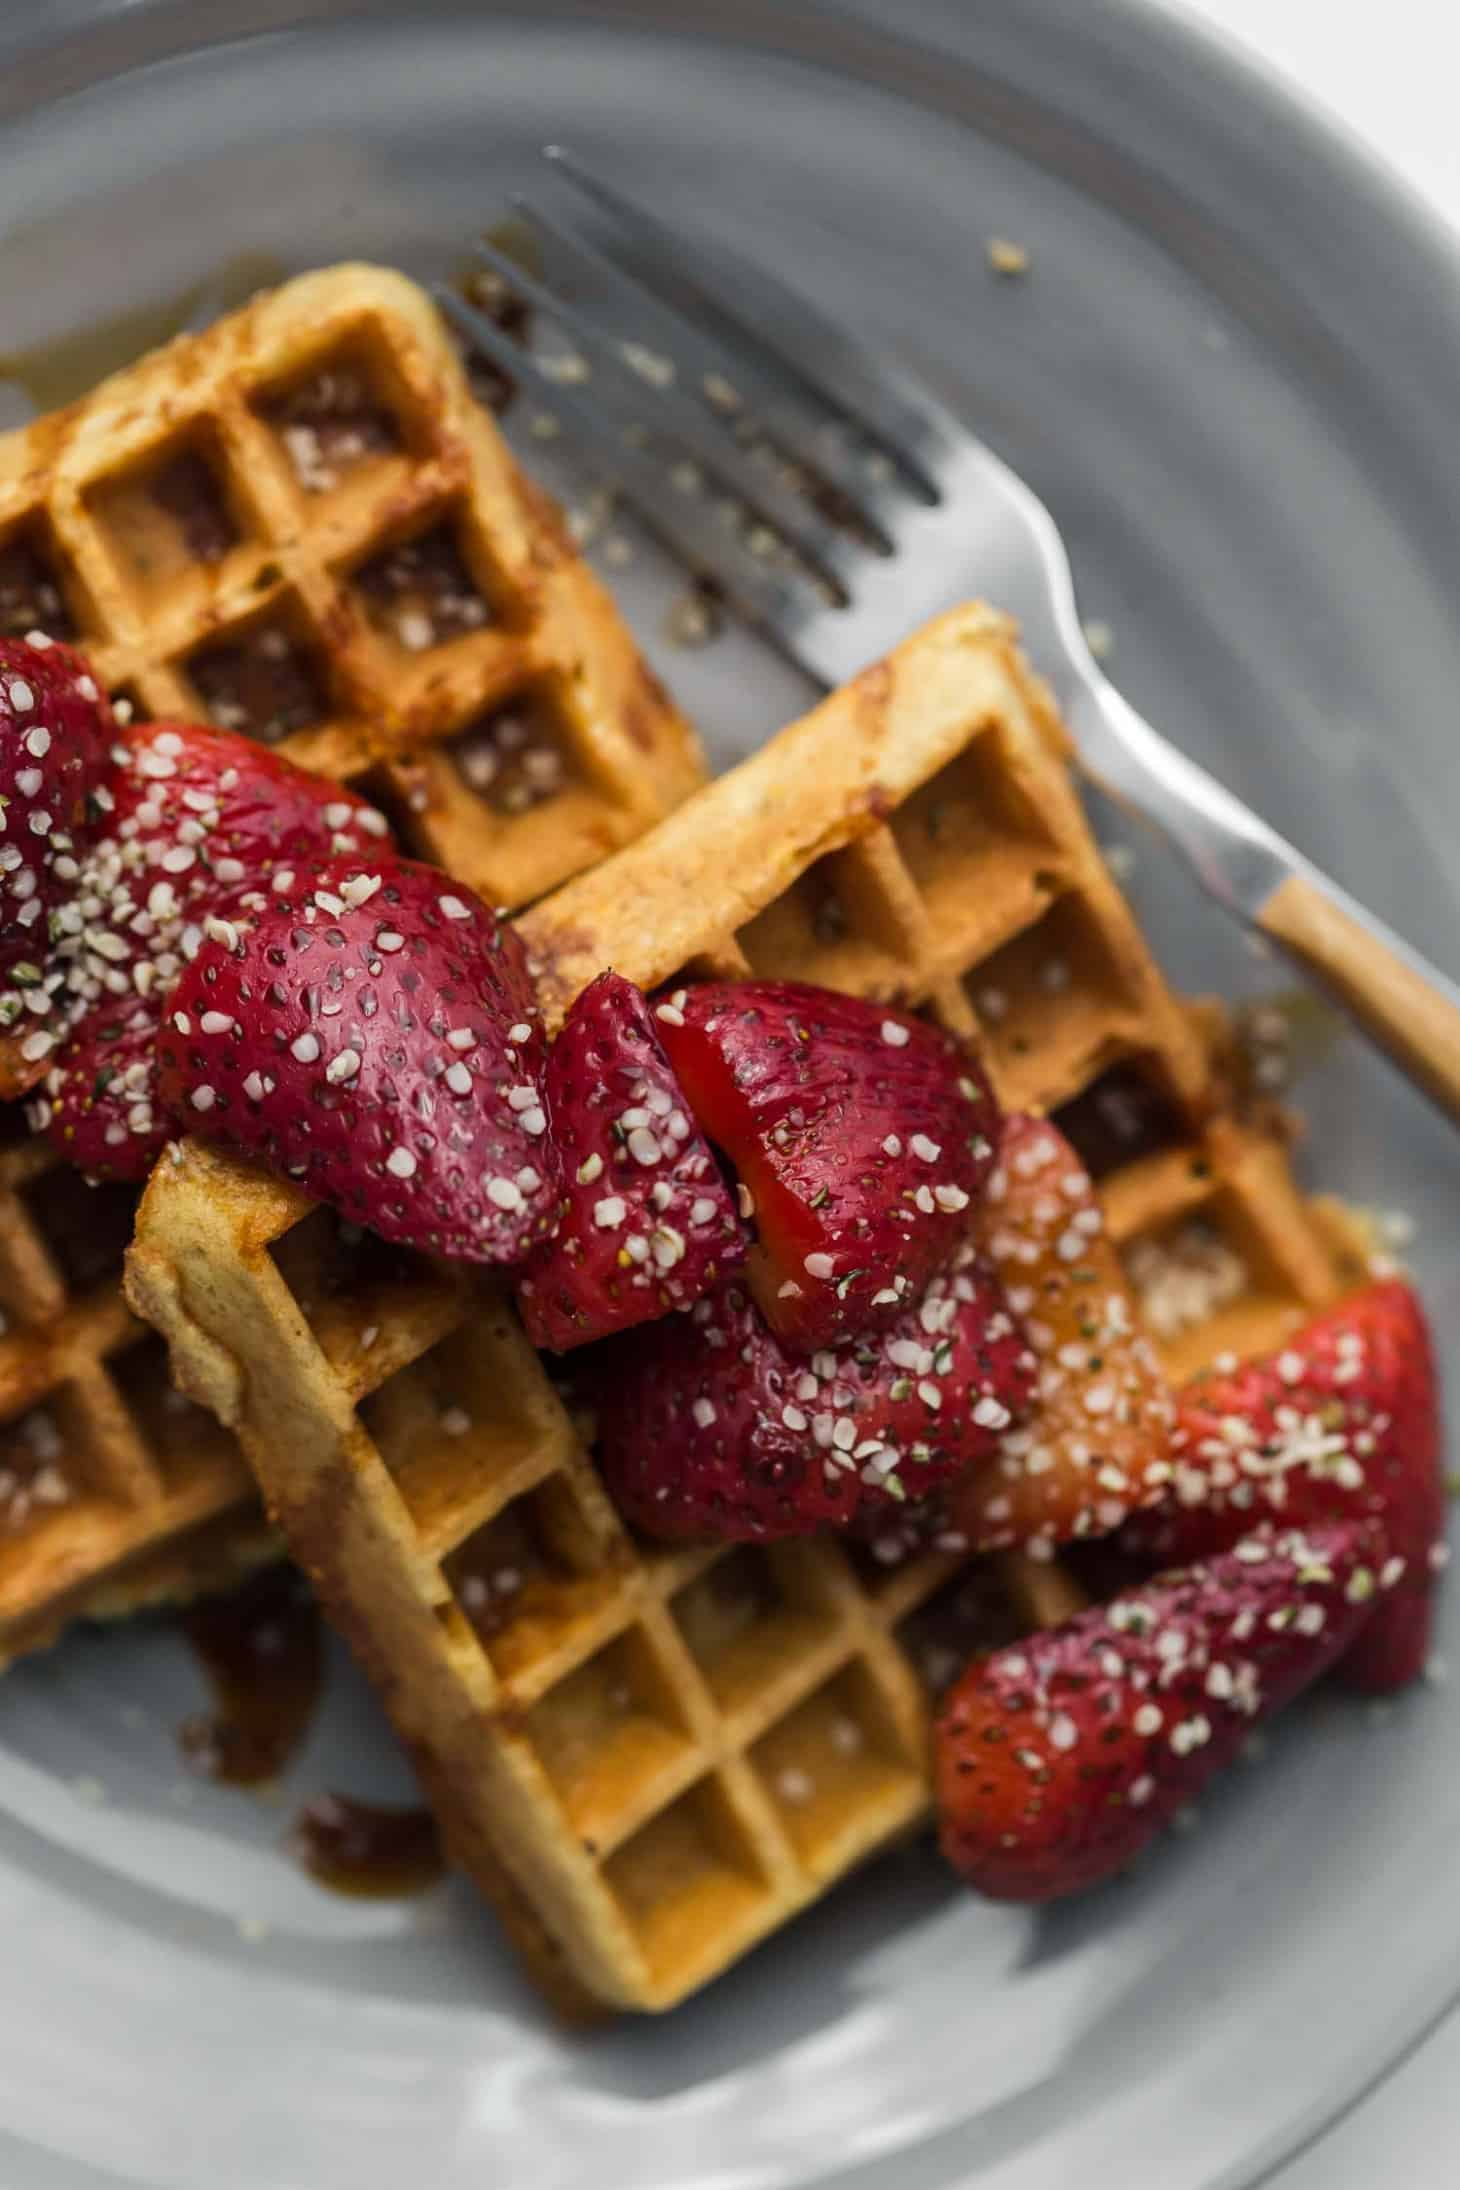 Gluten-Free Oat Cornmeal Waffles with Sorghum Strawberries | Naturally Ella